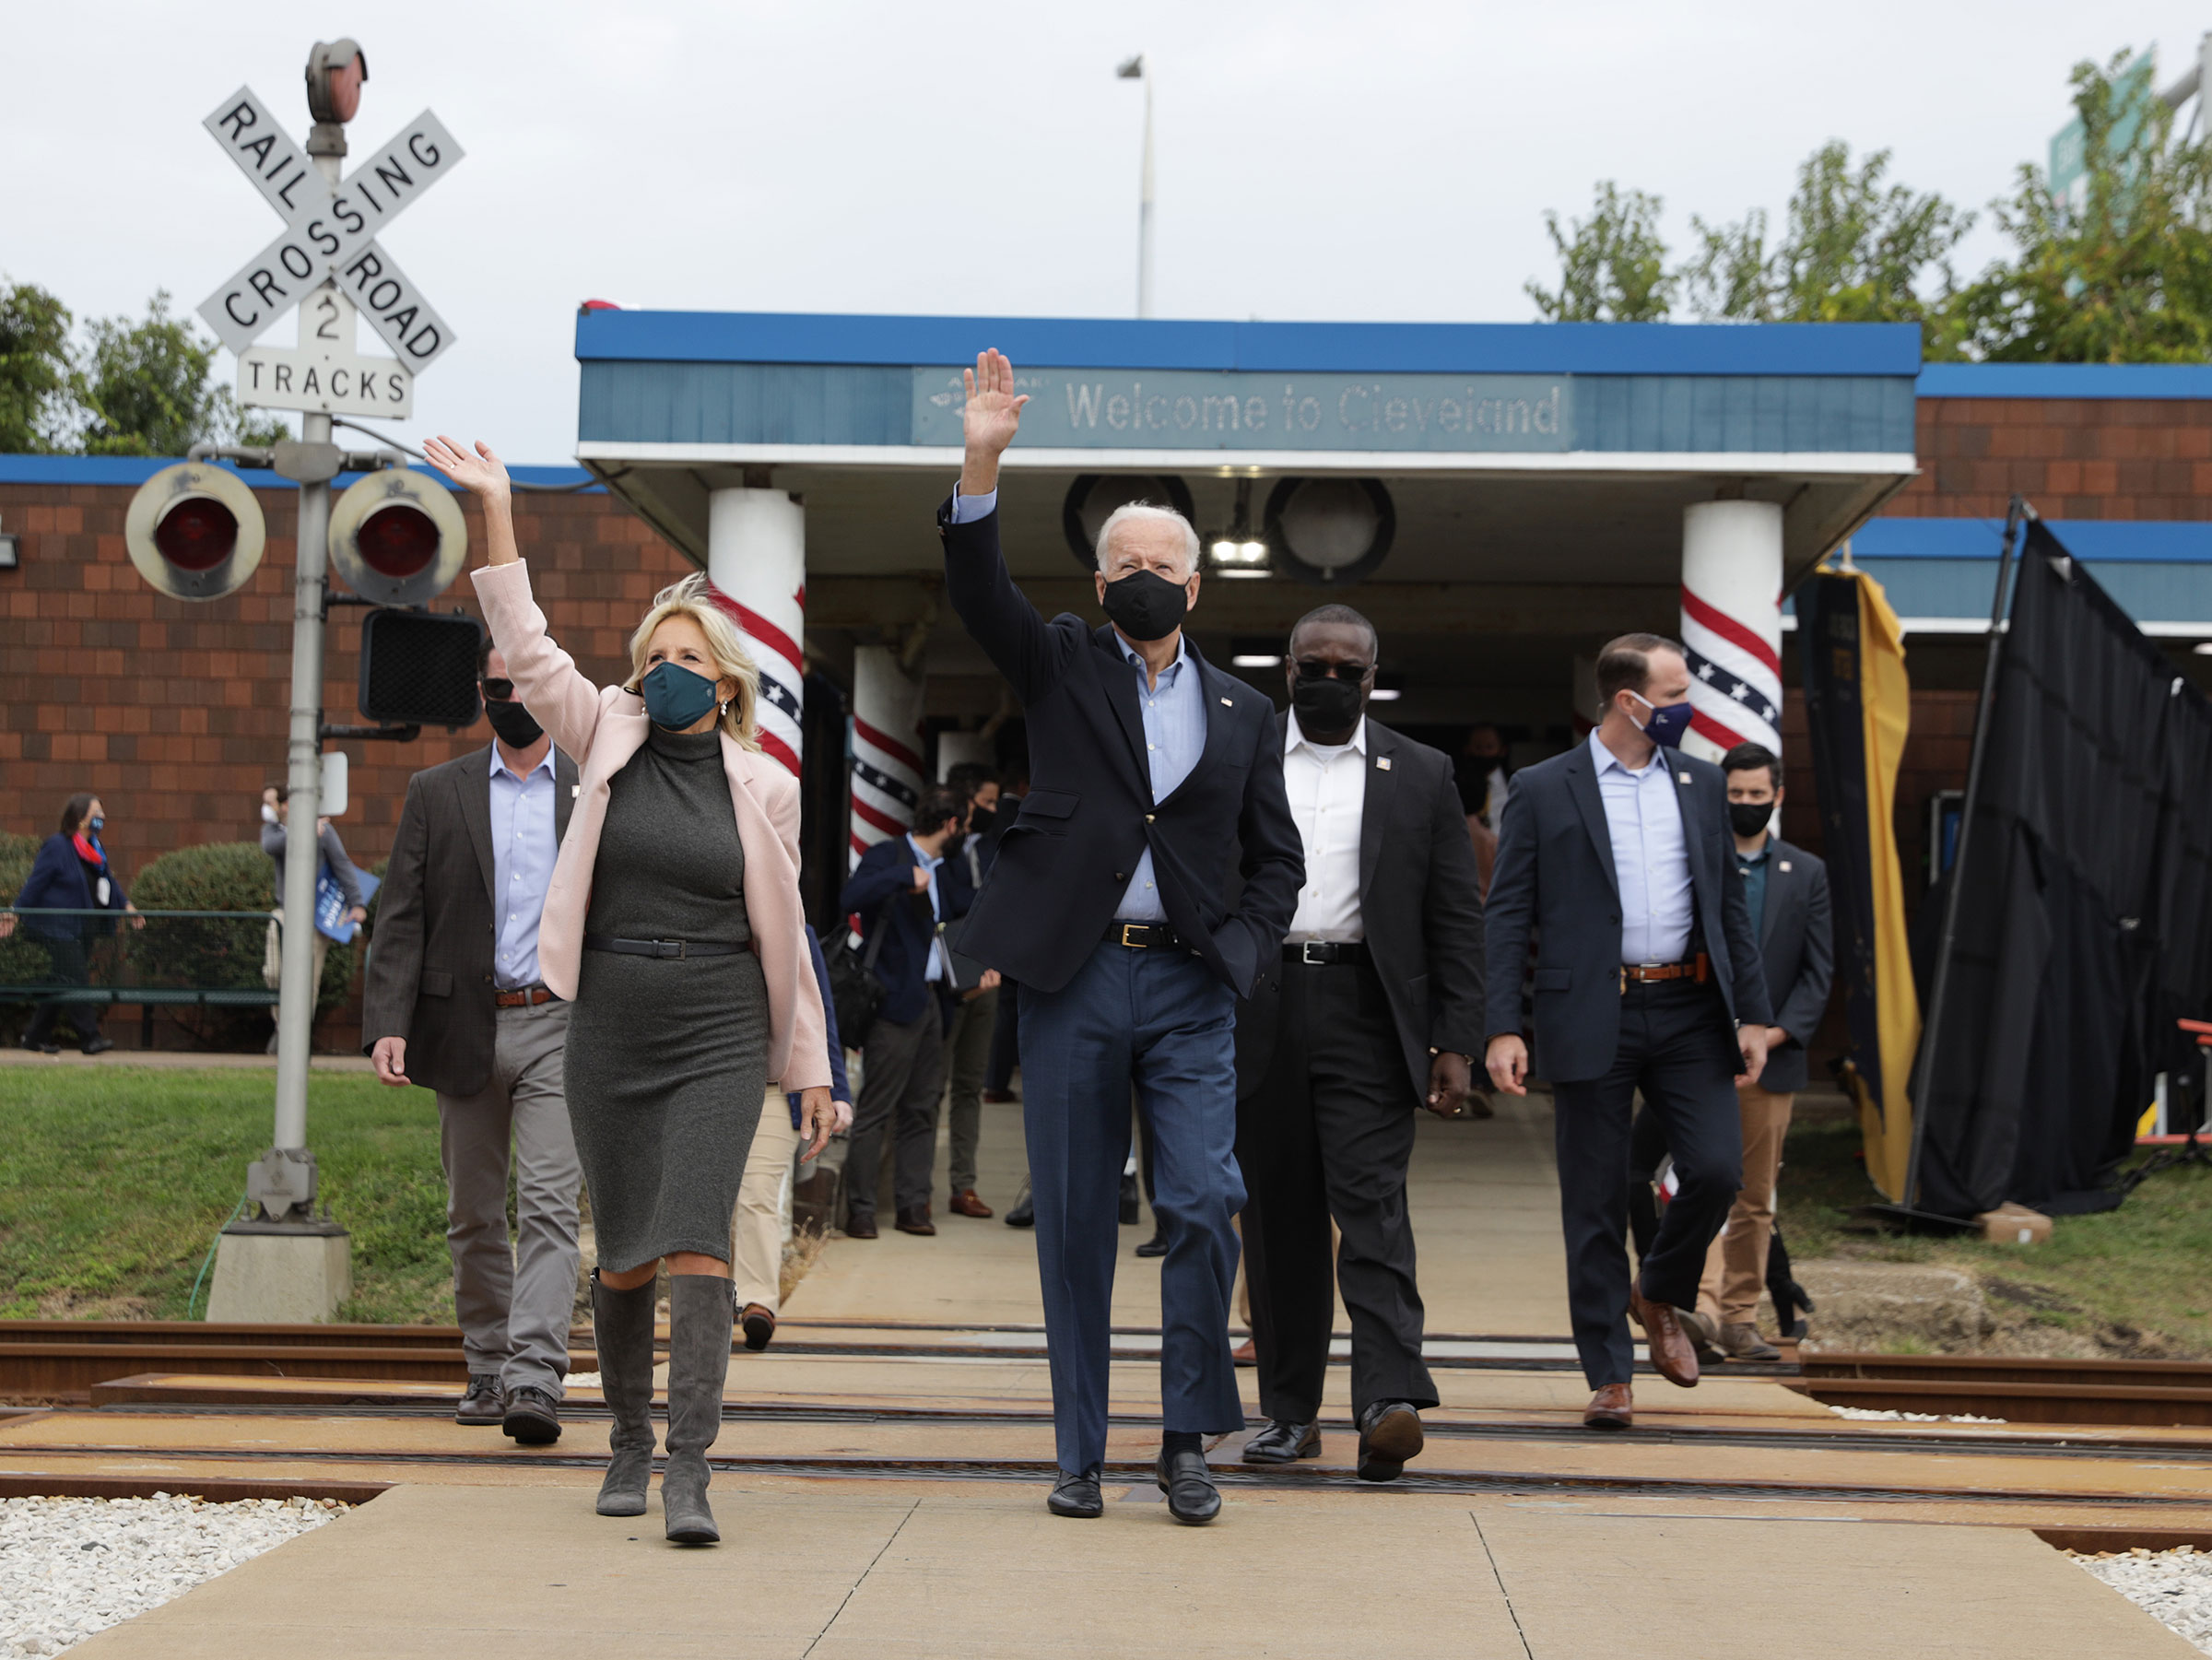 Democratic presidential nominee Joe Biden and his wife Dr. Jill Biden prepare to embark on a train campaign tour at the Cleveland Amtrak Station in Cleveland, Ohio on Sept. 30, 2020.